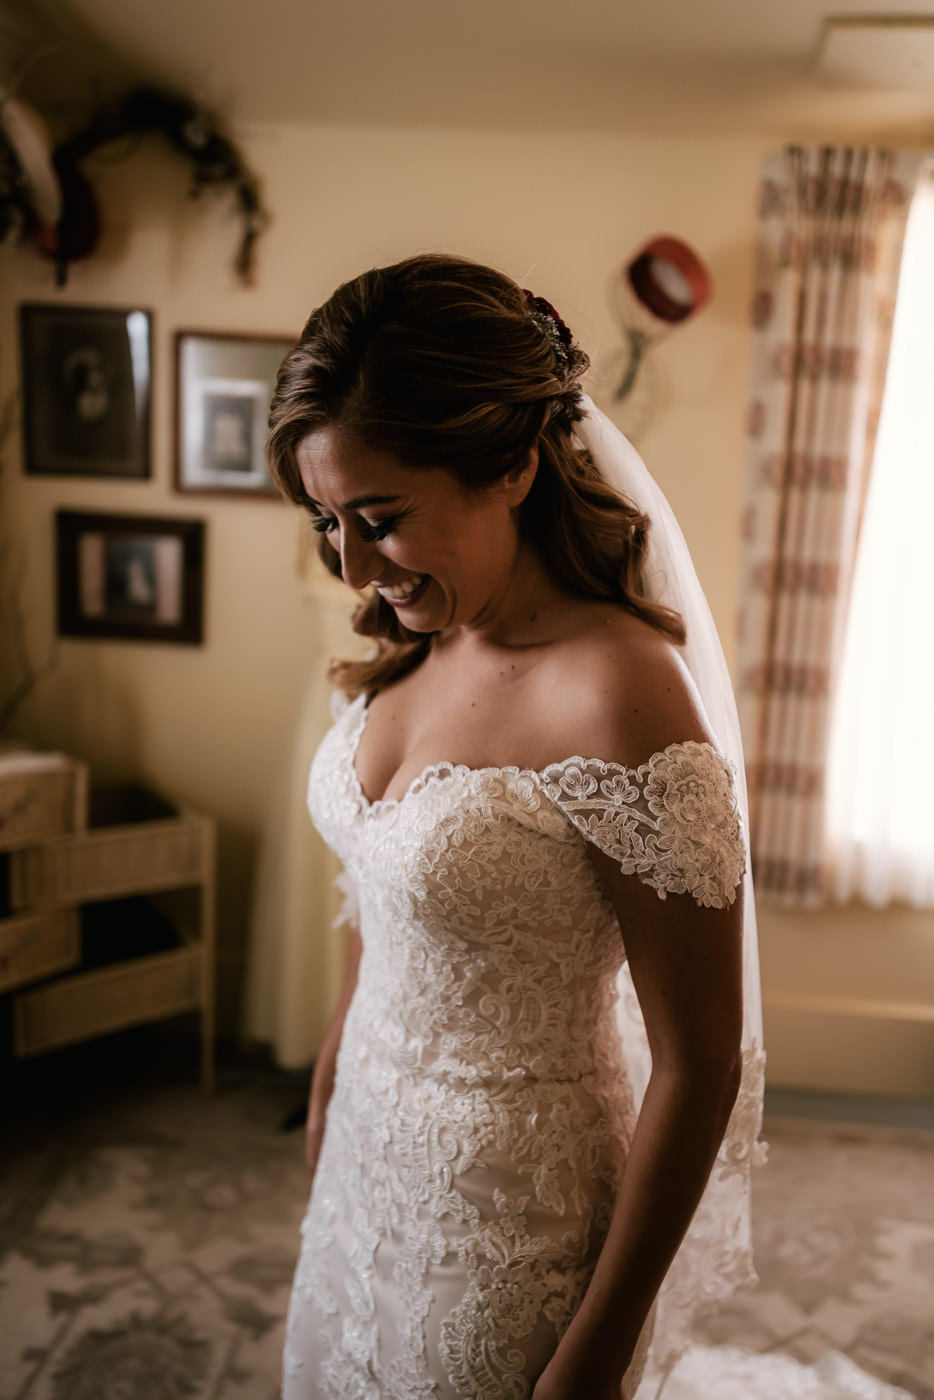 Bride shows off her beautiful wedding dress with its' delicate lace details.